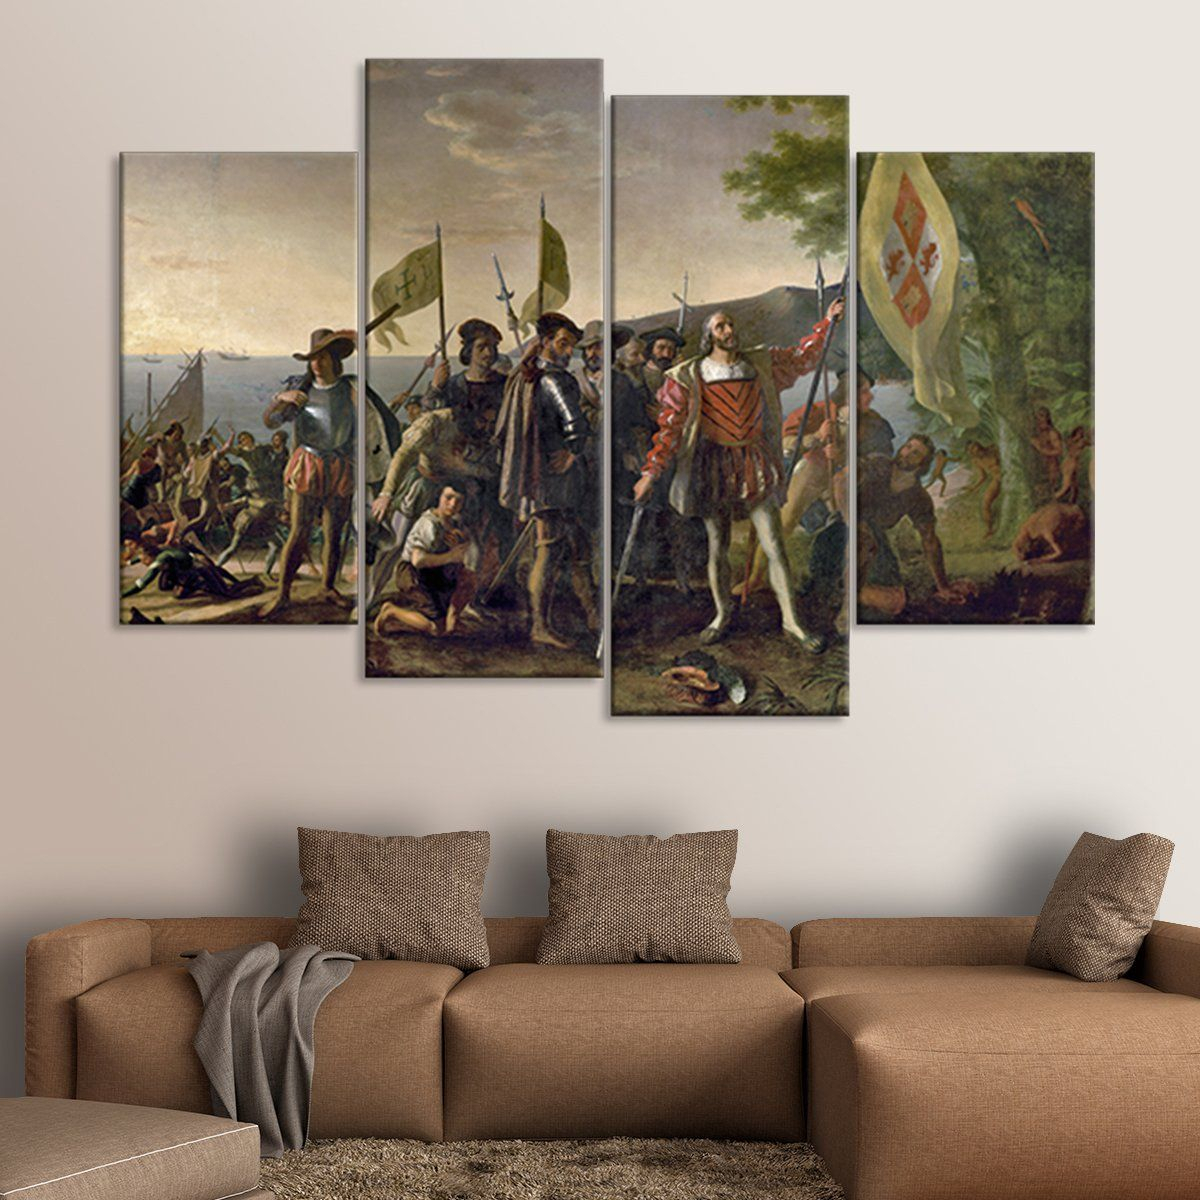 Well Known Landing Art Wall Decor In Landing Of Christopher Columbus Multi Panel Canvas Wall Art In 2019 (Gallery 18 of 20)